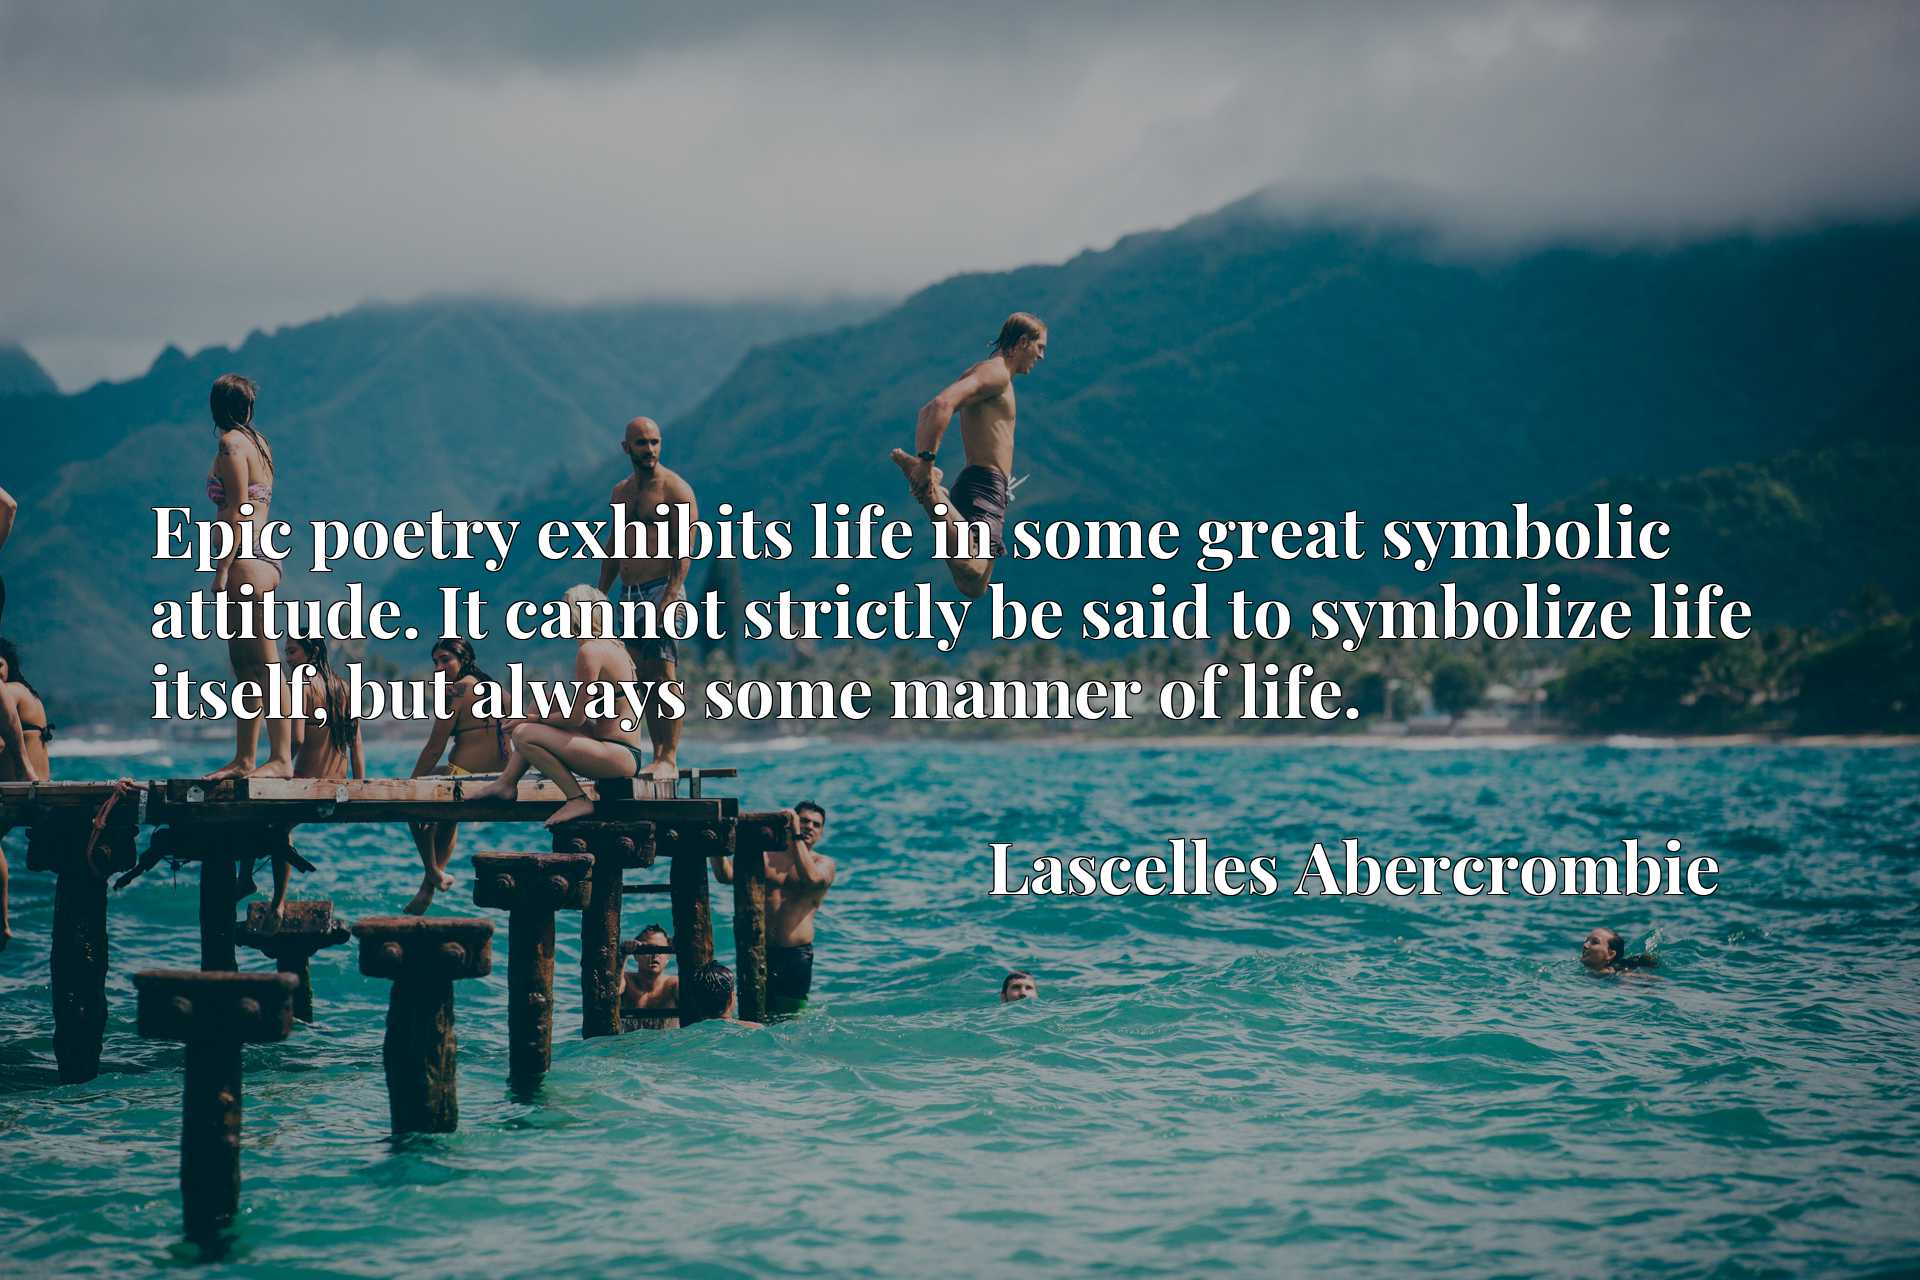 Epic poetry exhibits life in some great symbolic attitude. It cannot strictly be said to symbolize life itself, but always some manner of life.